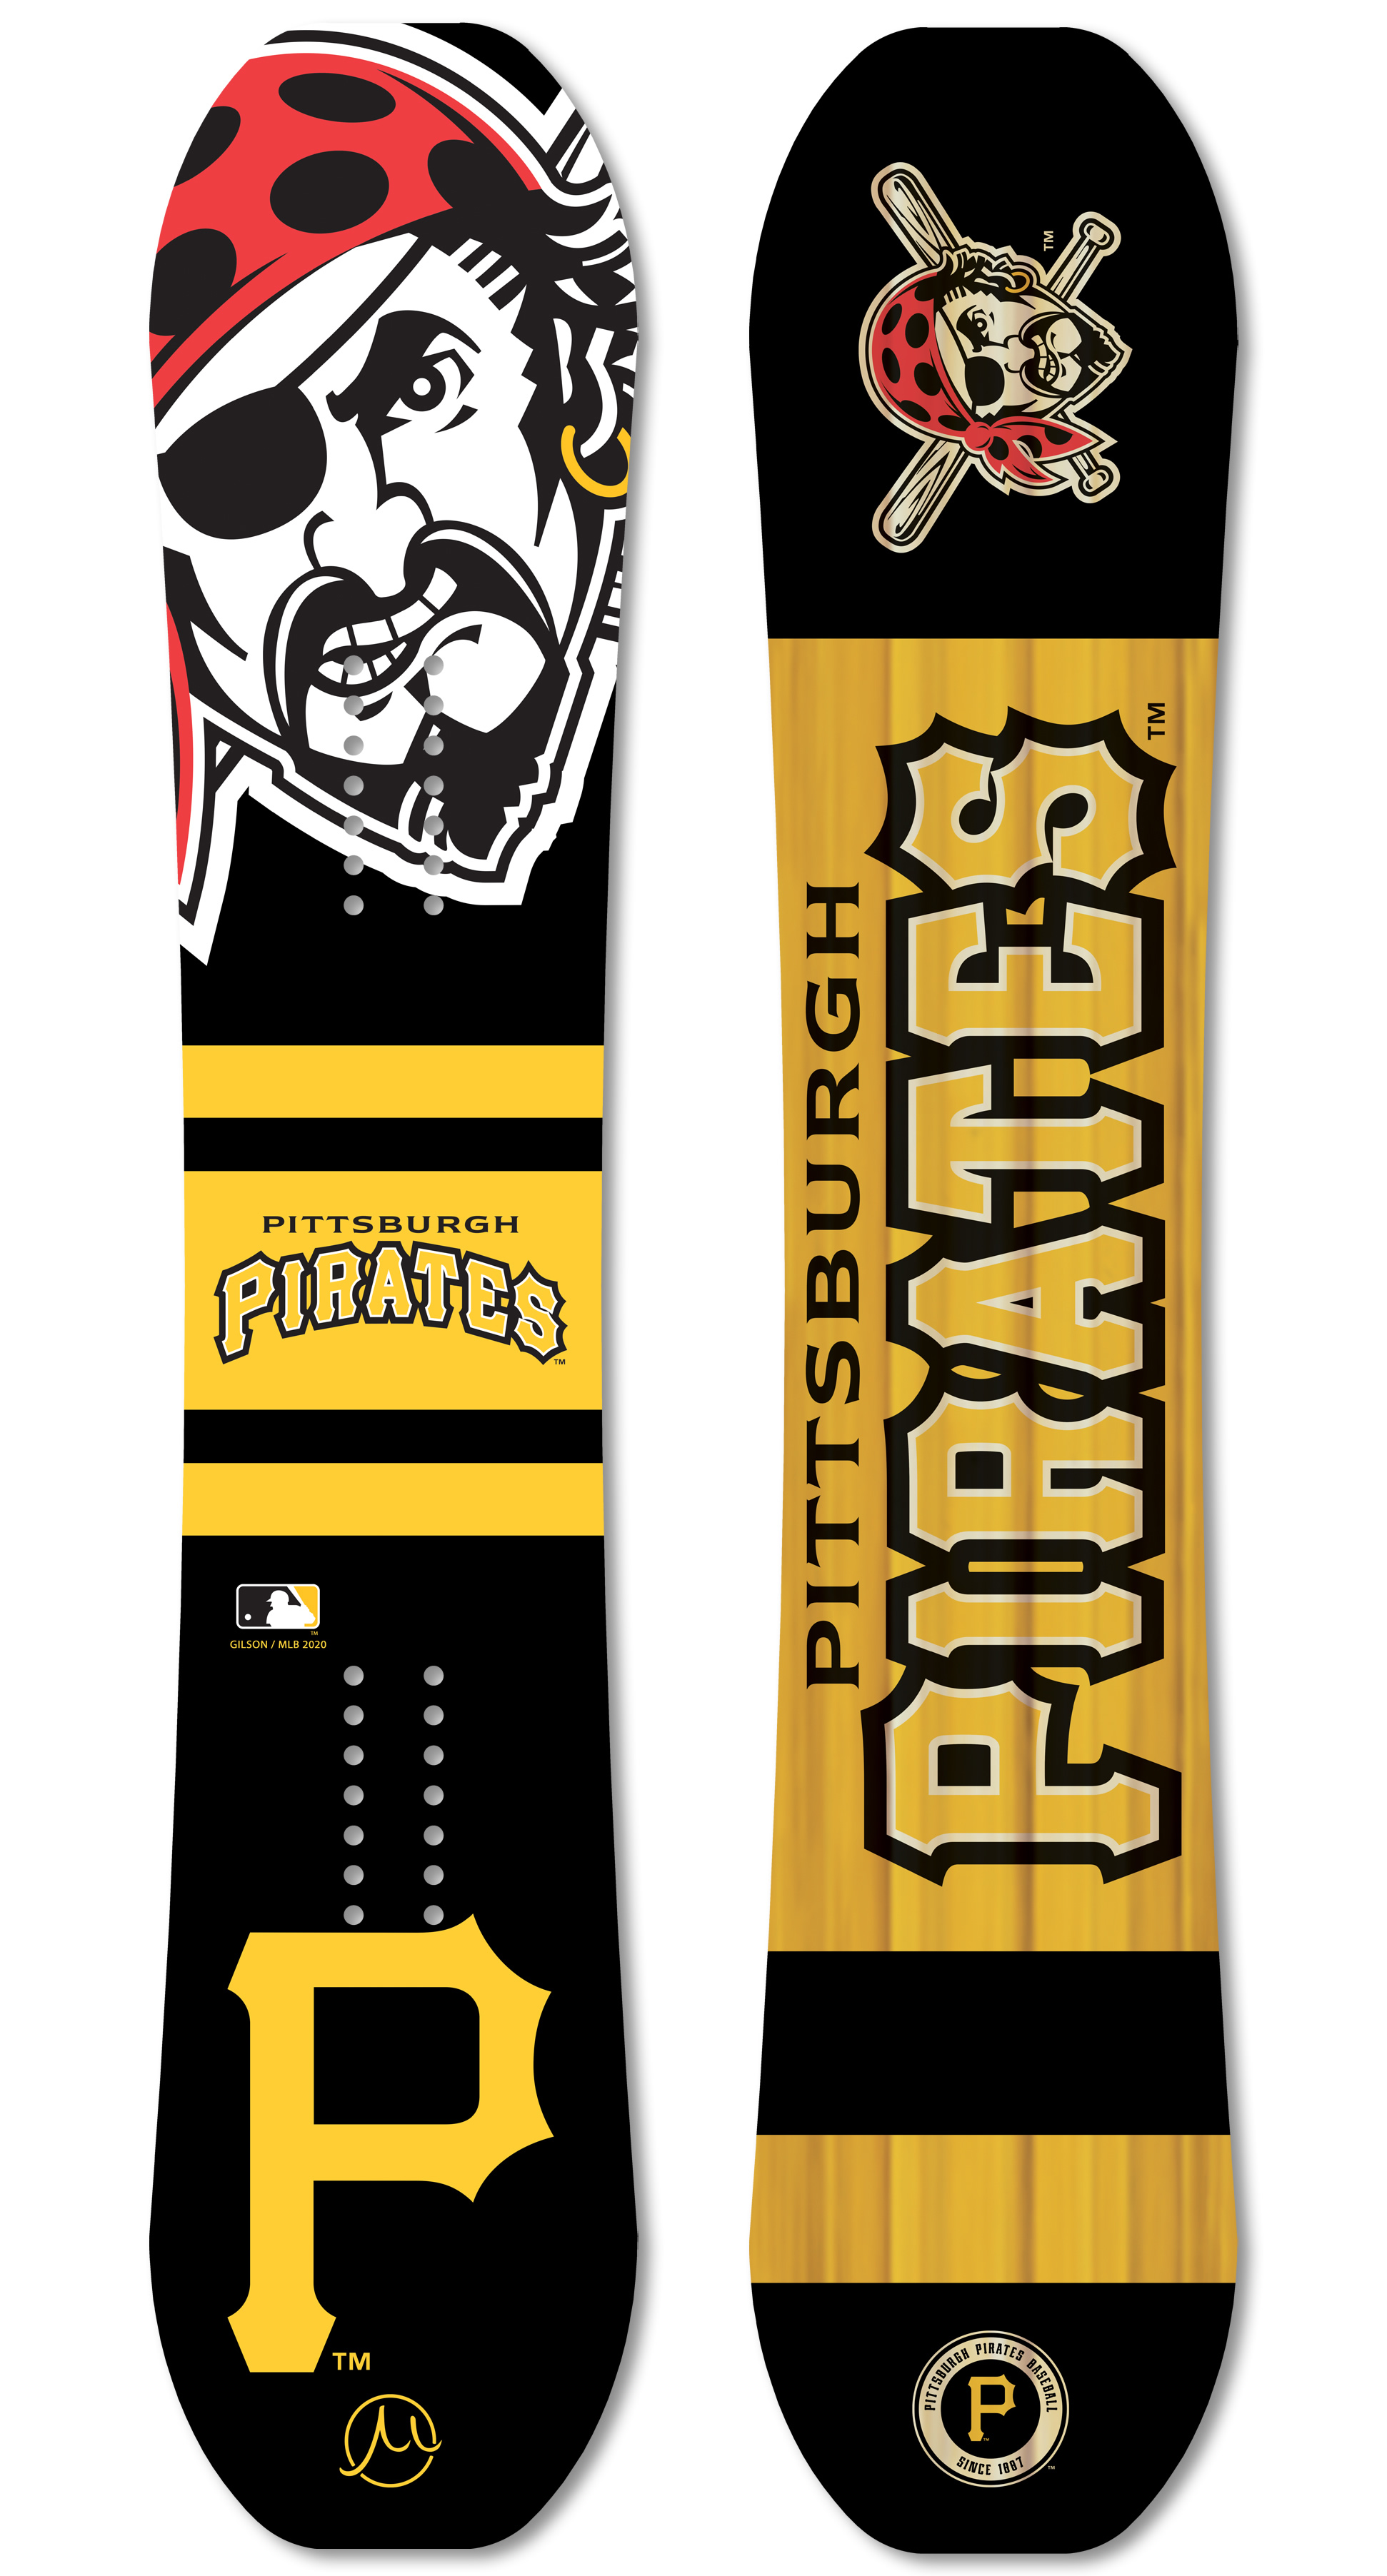 Mlb pittsburgh pirates youth large